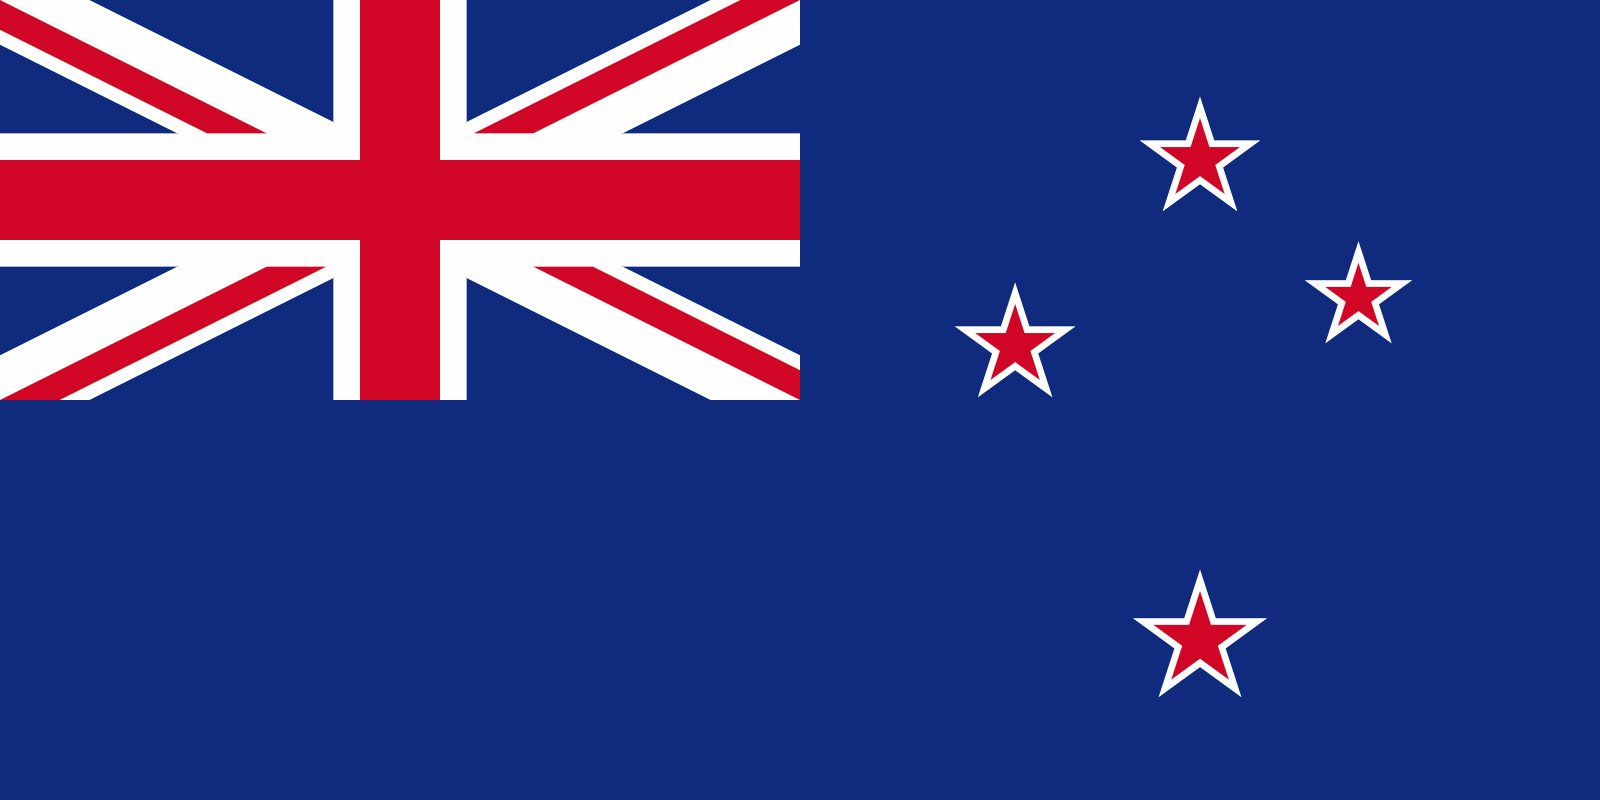 File:Flag of New Zealand.png - New Zealand PNG